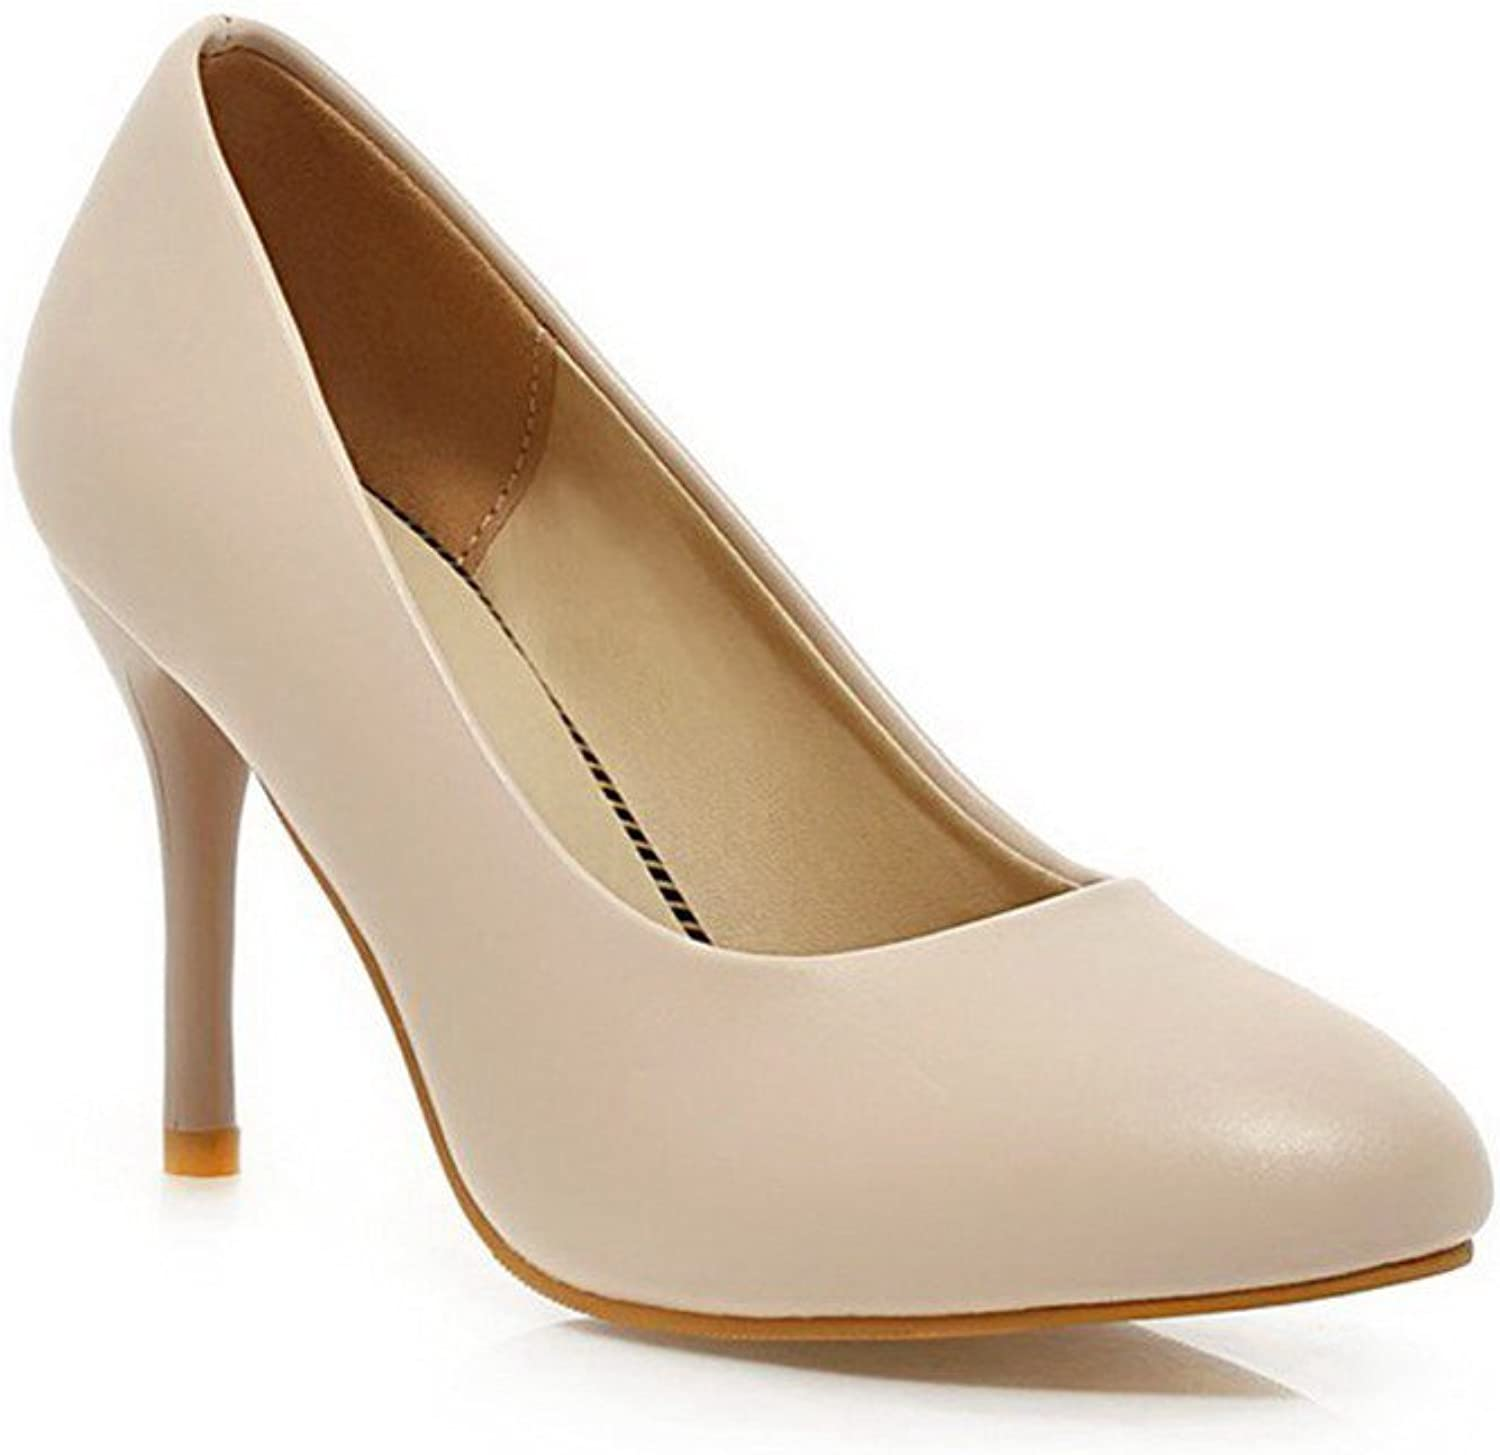 AmoonyFashion Women's High-Heels Soft Material Solid Pull-on Pointed Closed Toe Pumps-shoes